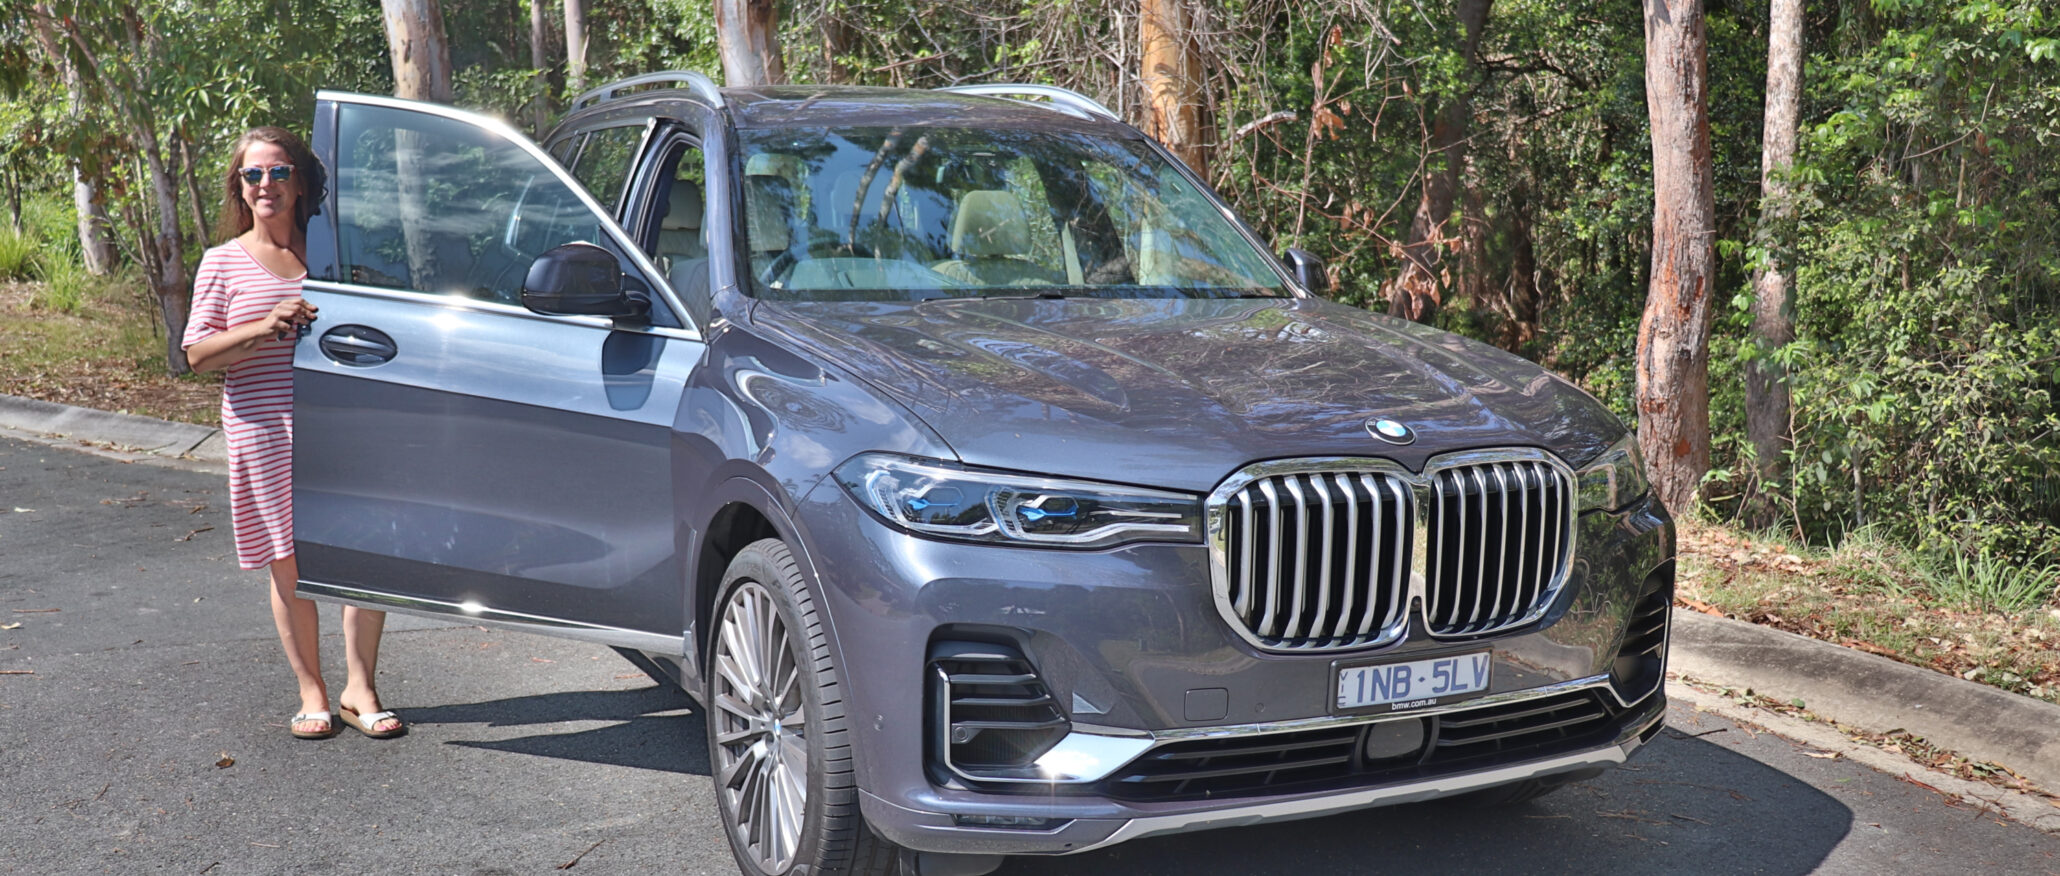 2019 BMW X7 SUV family car review - BabyDrive